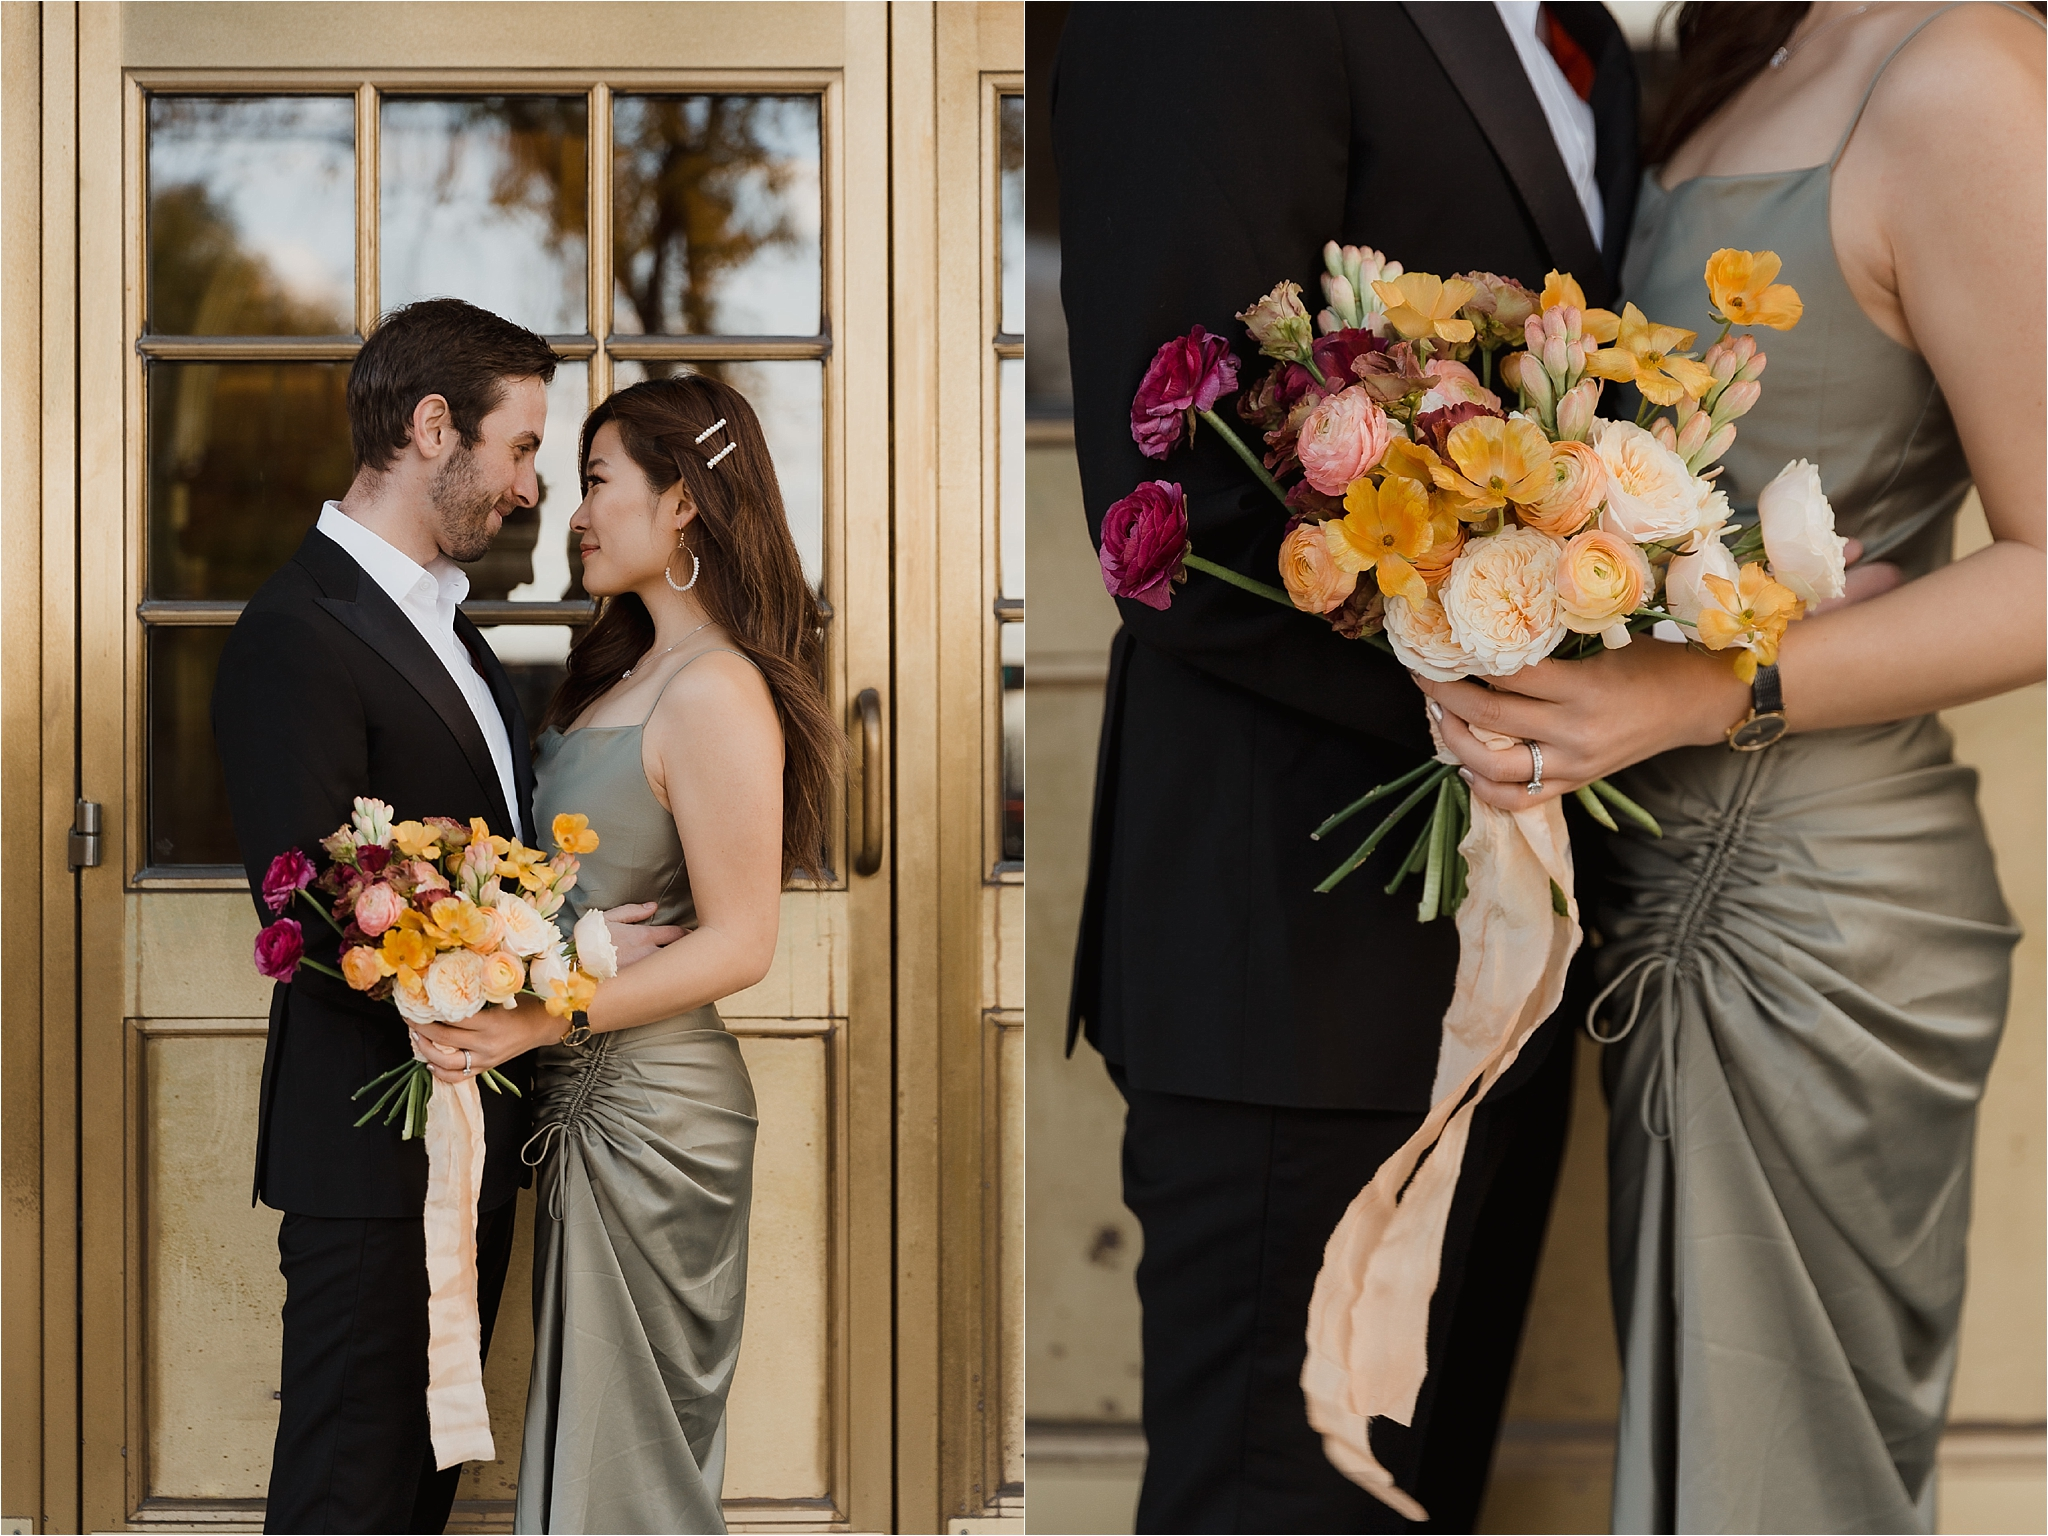 Downtown Ottawa elopement photo shoot ombre bouquet, Wellington building, photography by Sonia V Photography